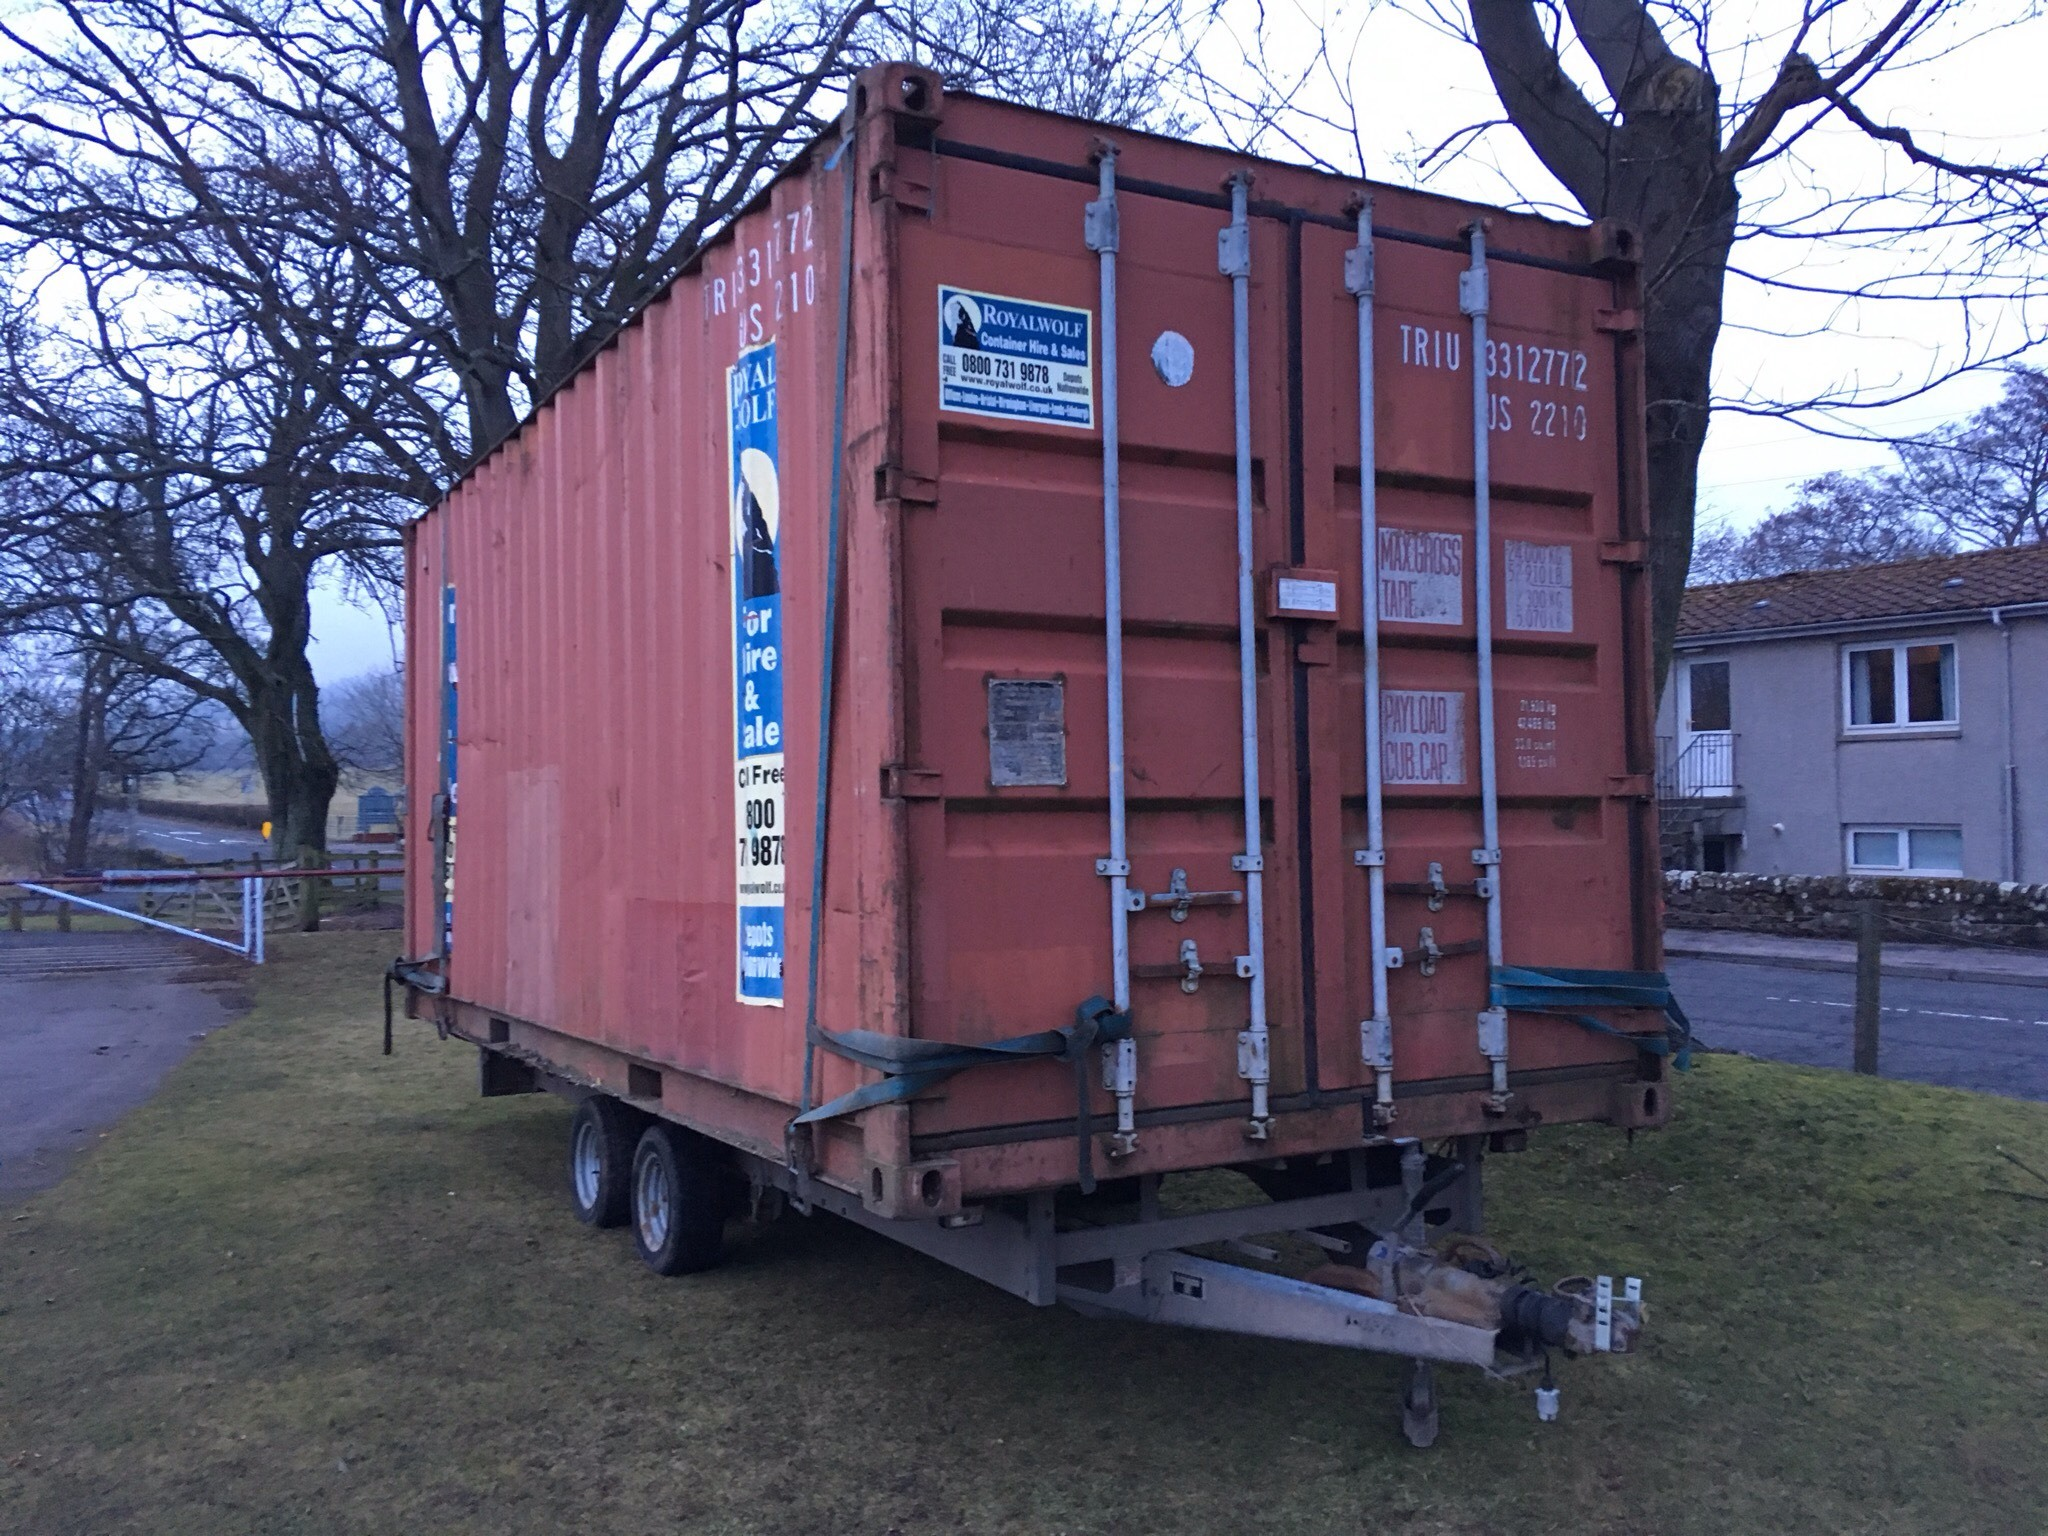 The flatbed trailer and storage unit stolen from the Duffus Park in Cupar